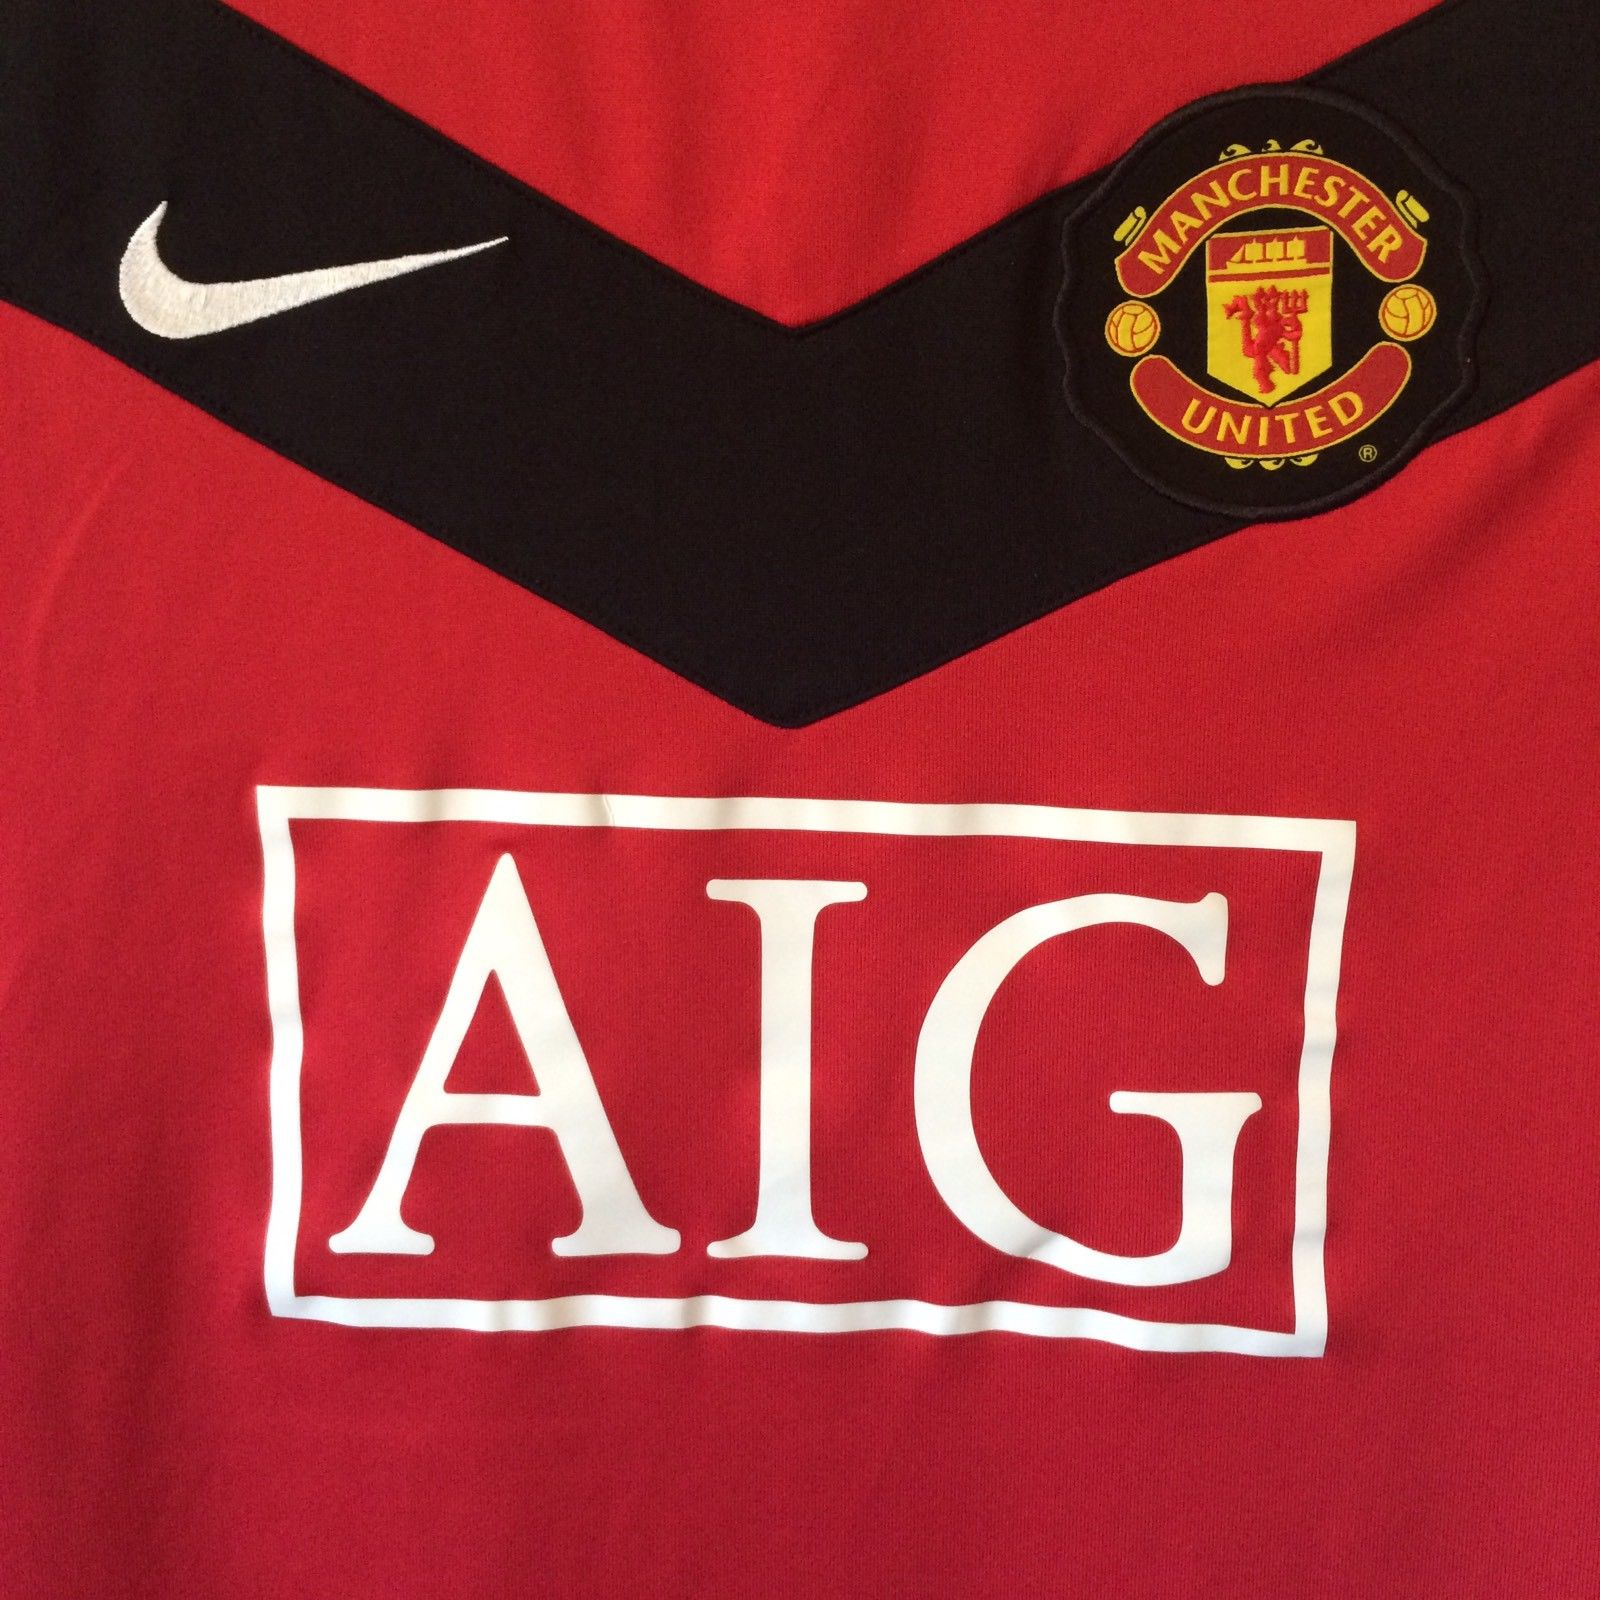 8845feb8e7c Man Utd Old Football Shirts